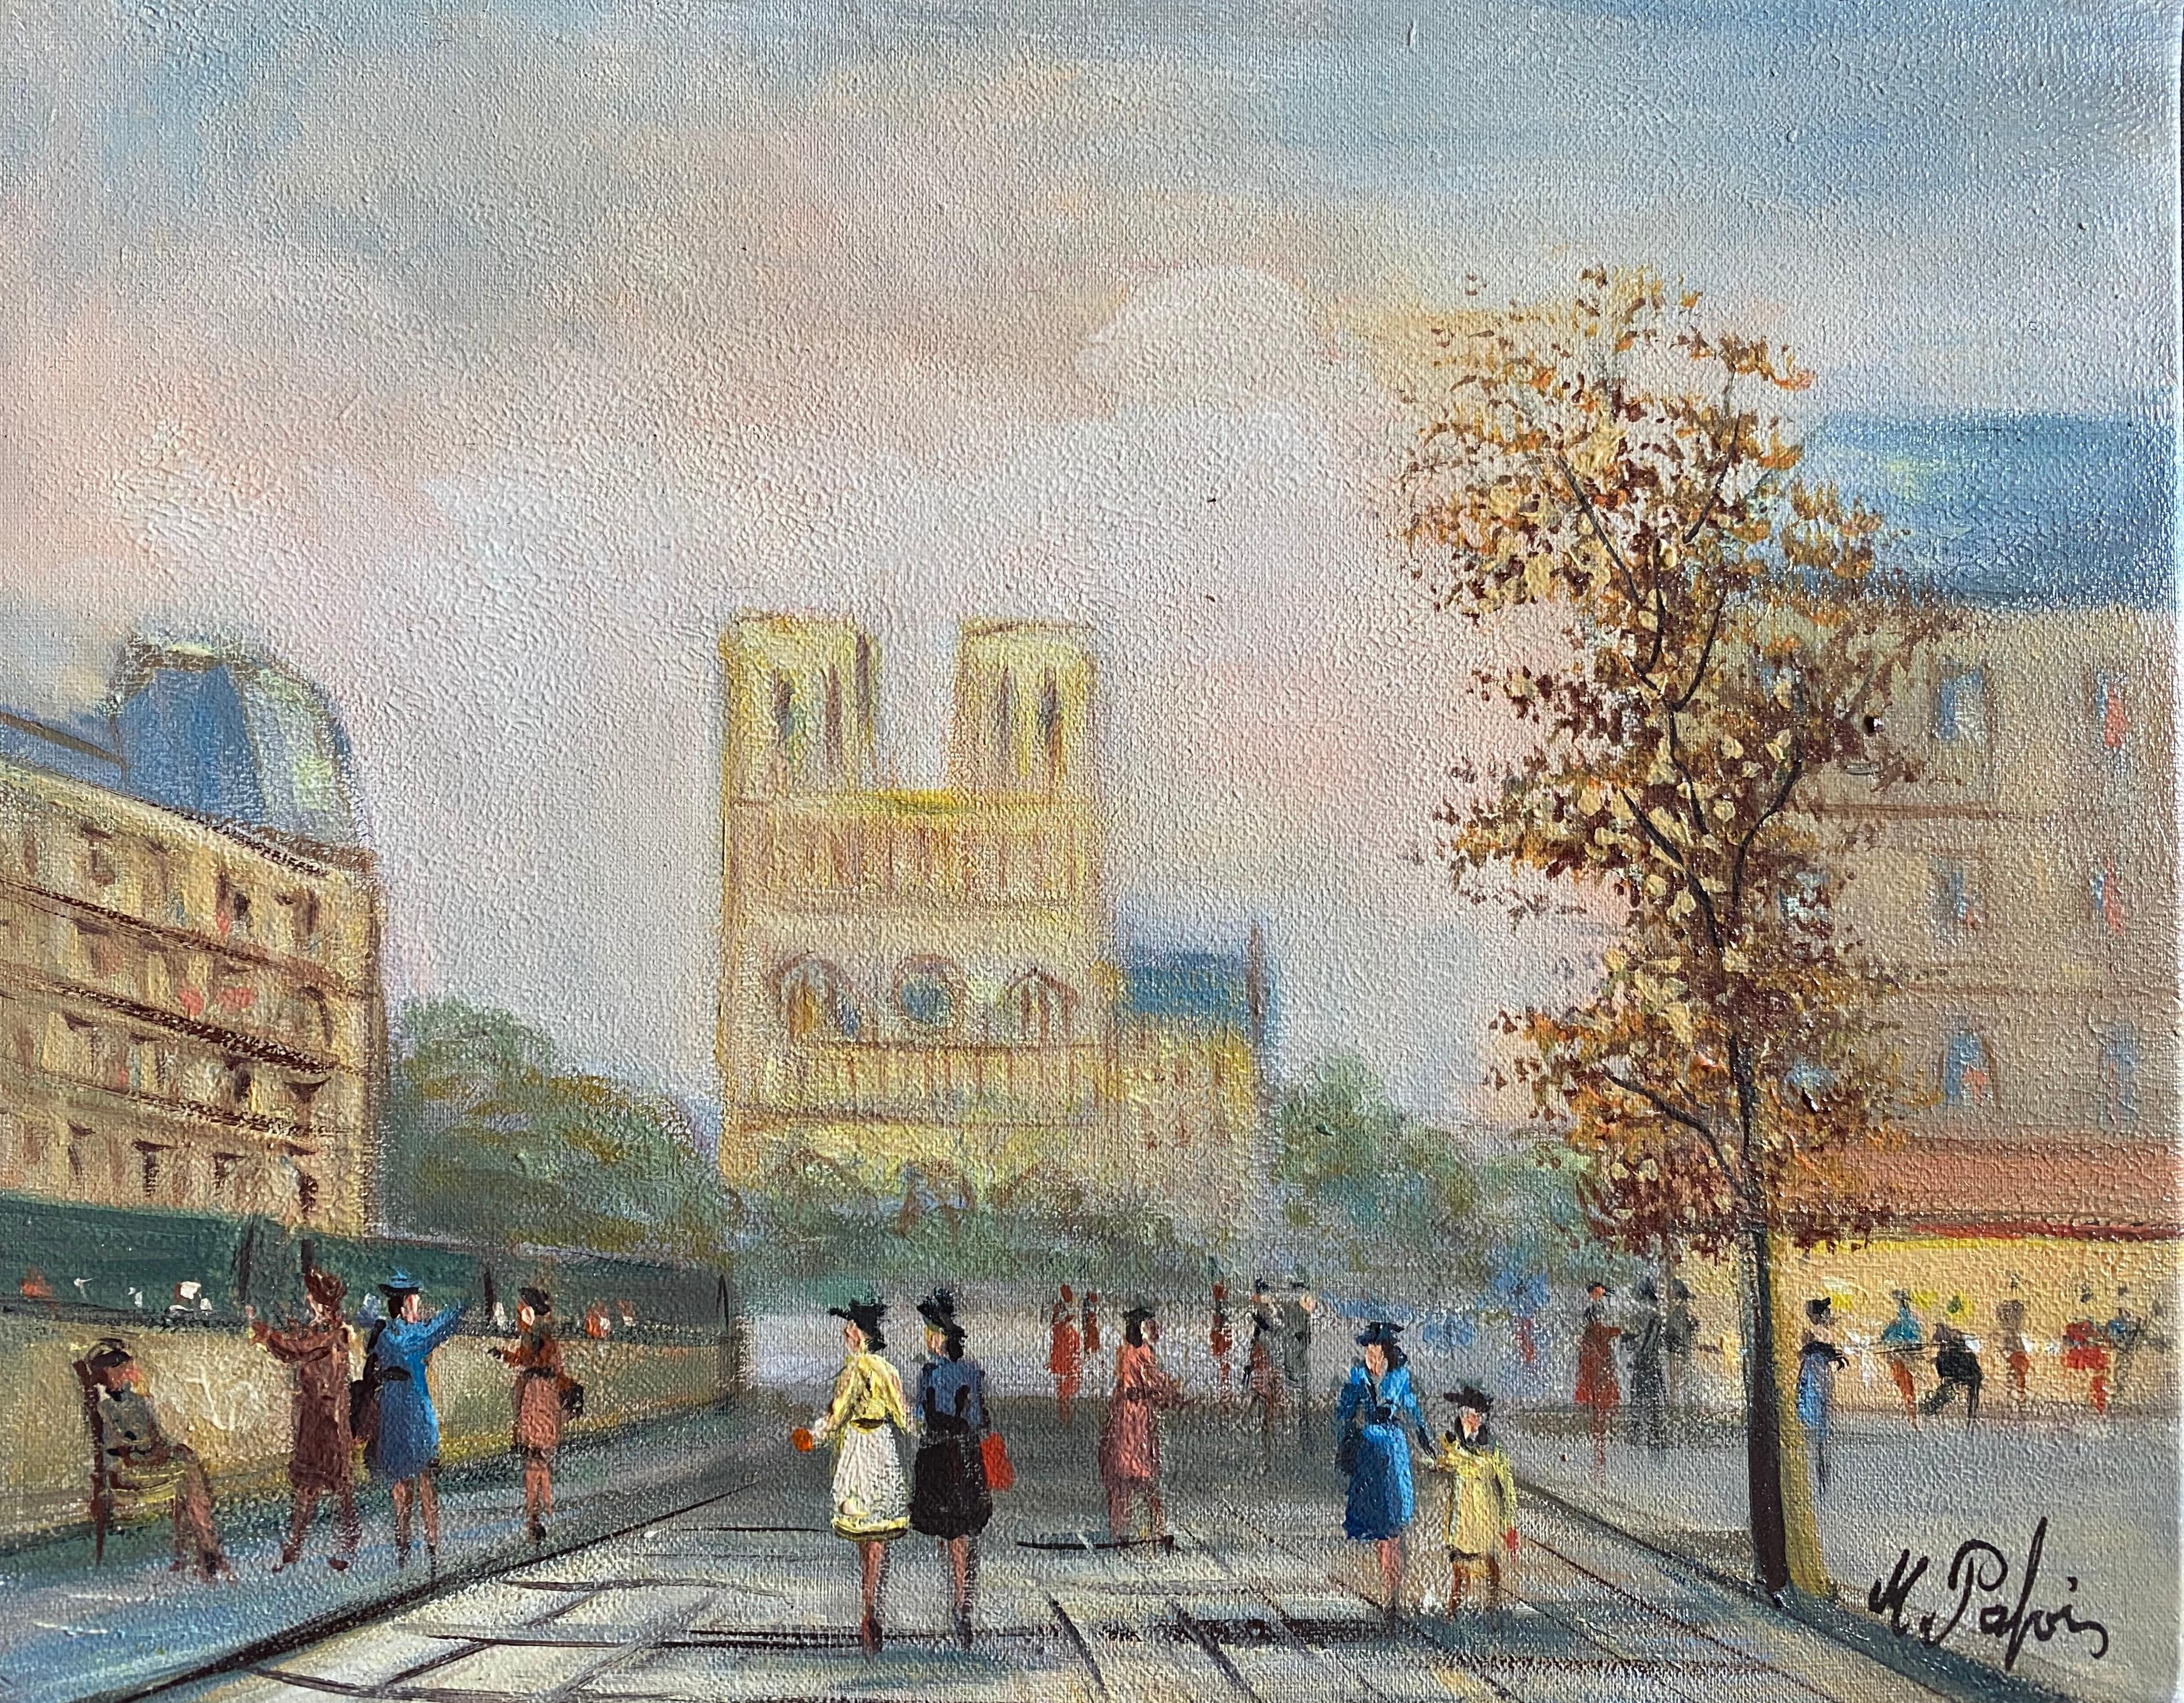 Notre Dame Paris Fashionable Figures Colourful Clothing